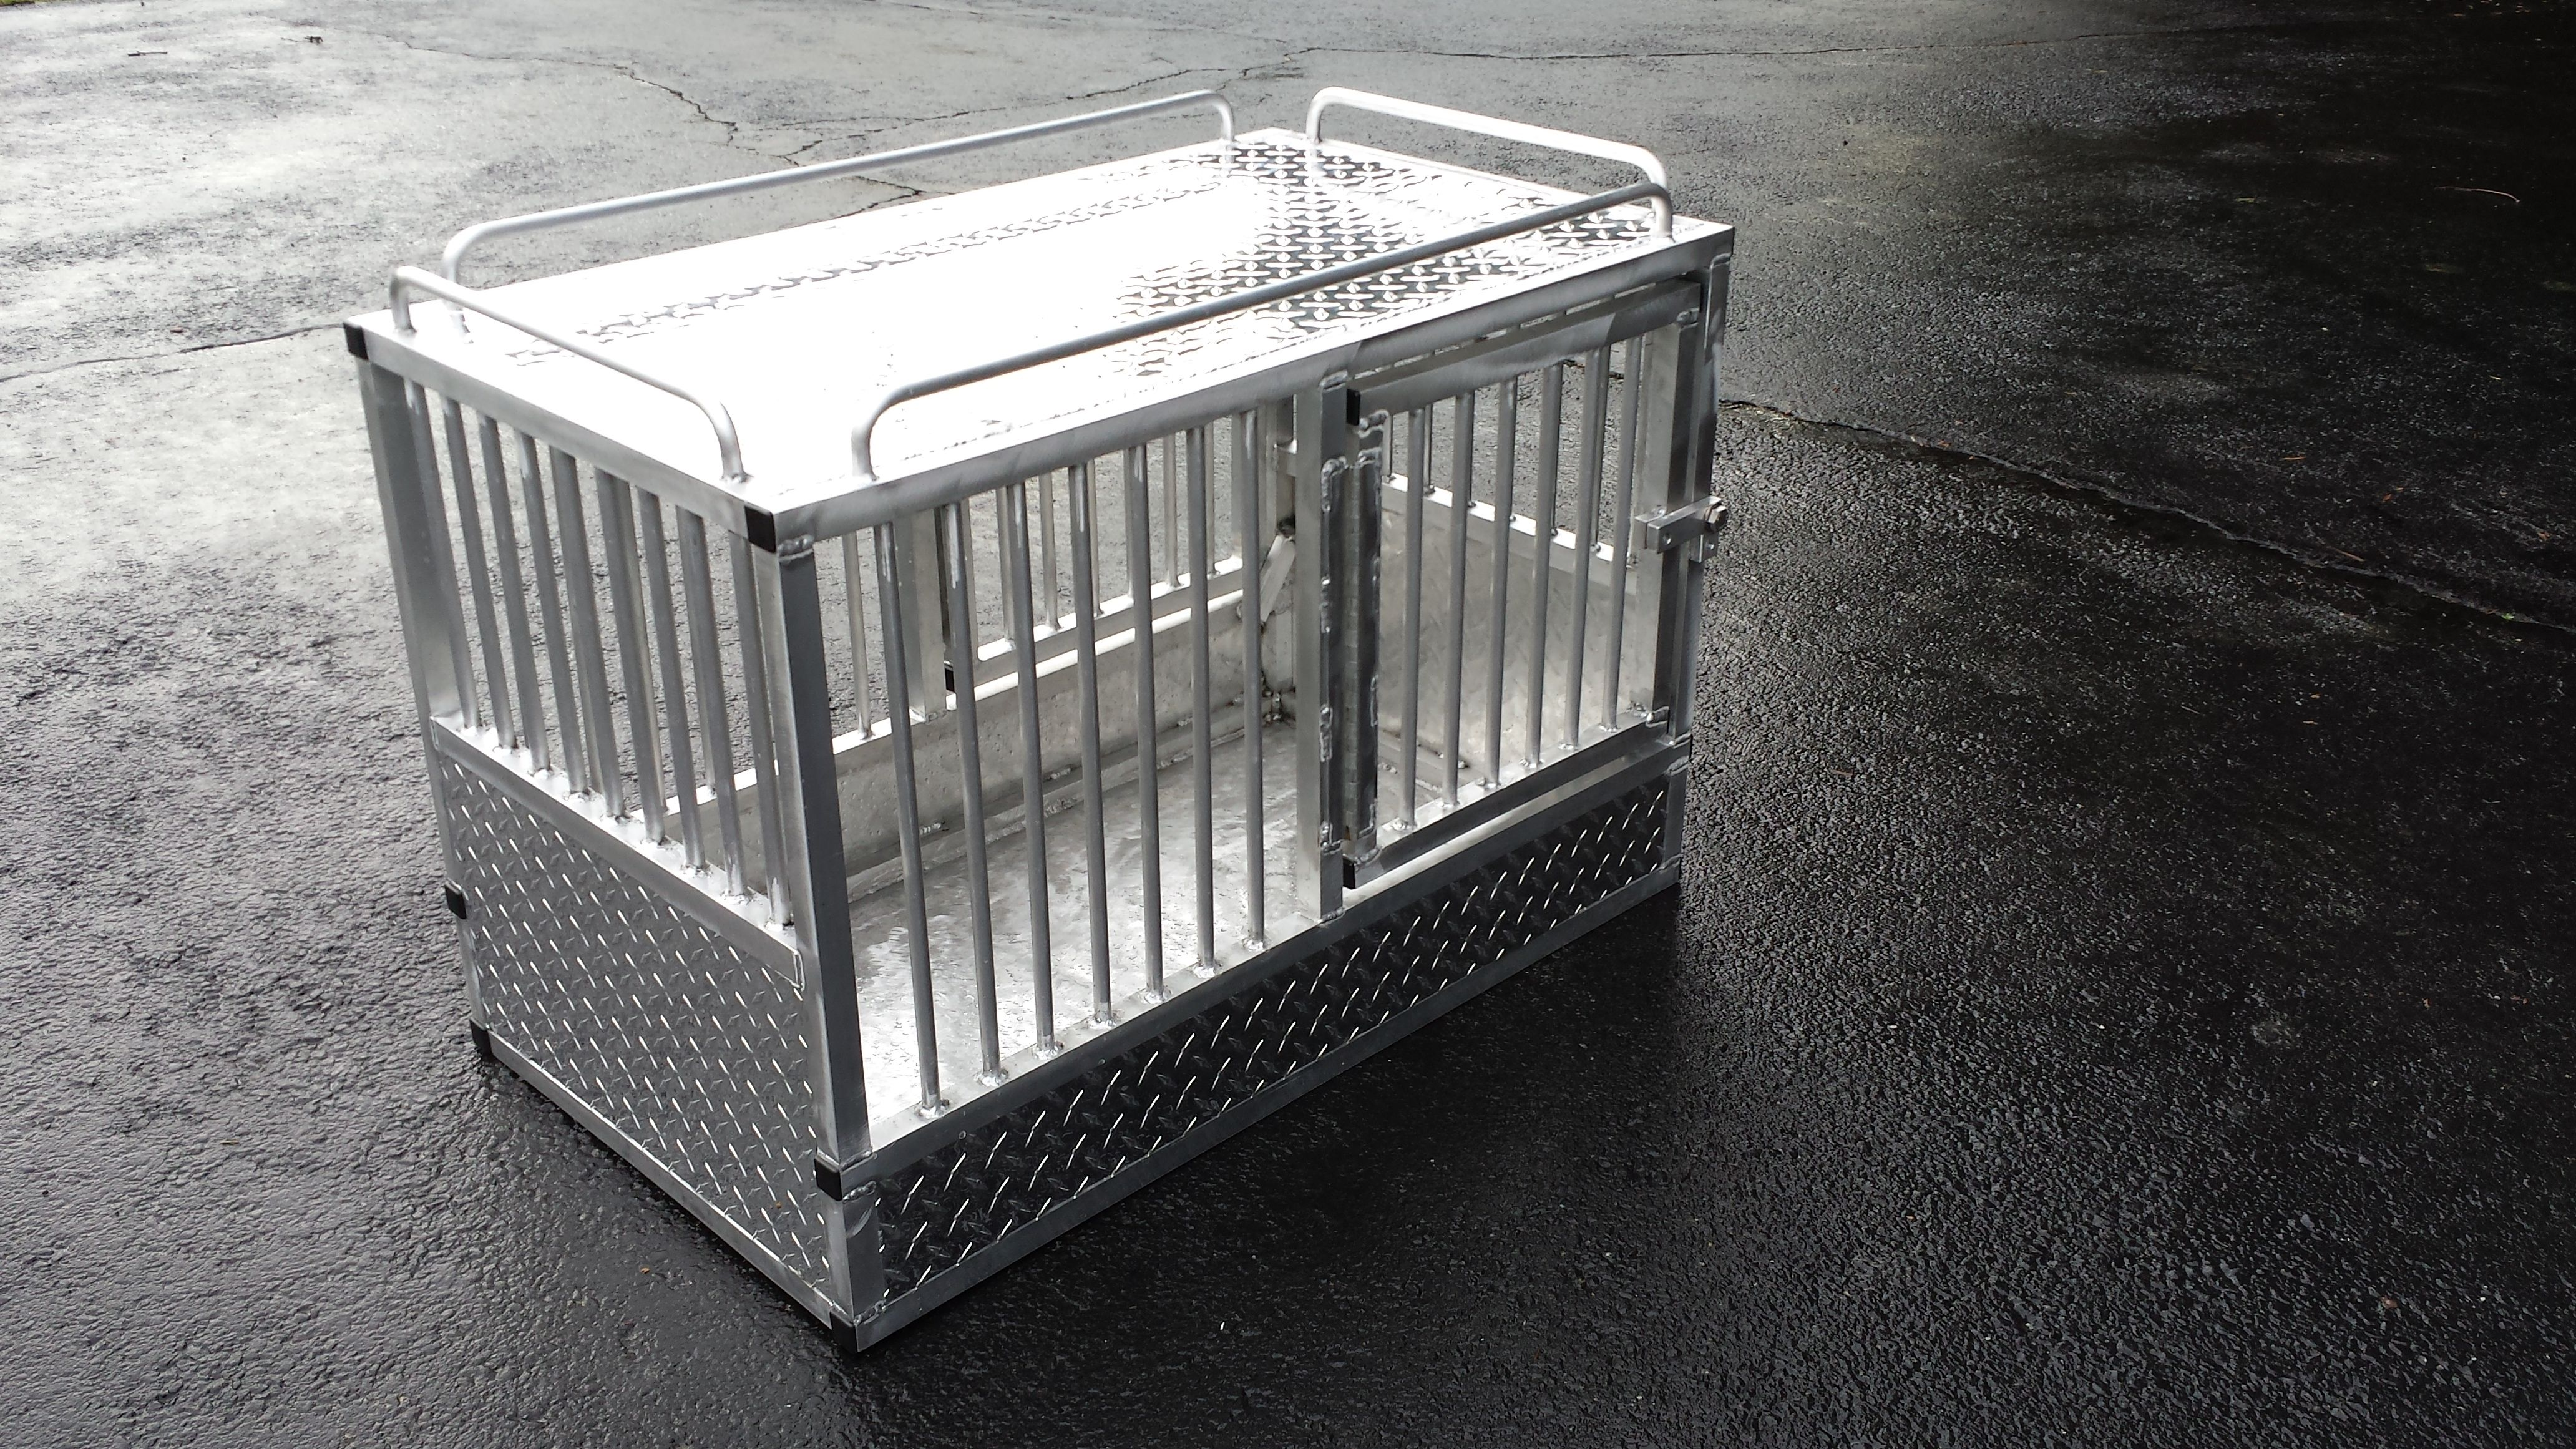 Handmade Custom Aluminum K 9 Crate By Little Enterprises